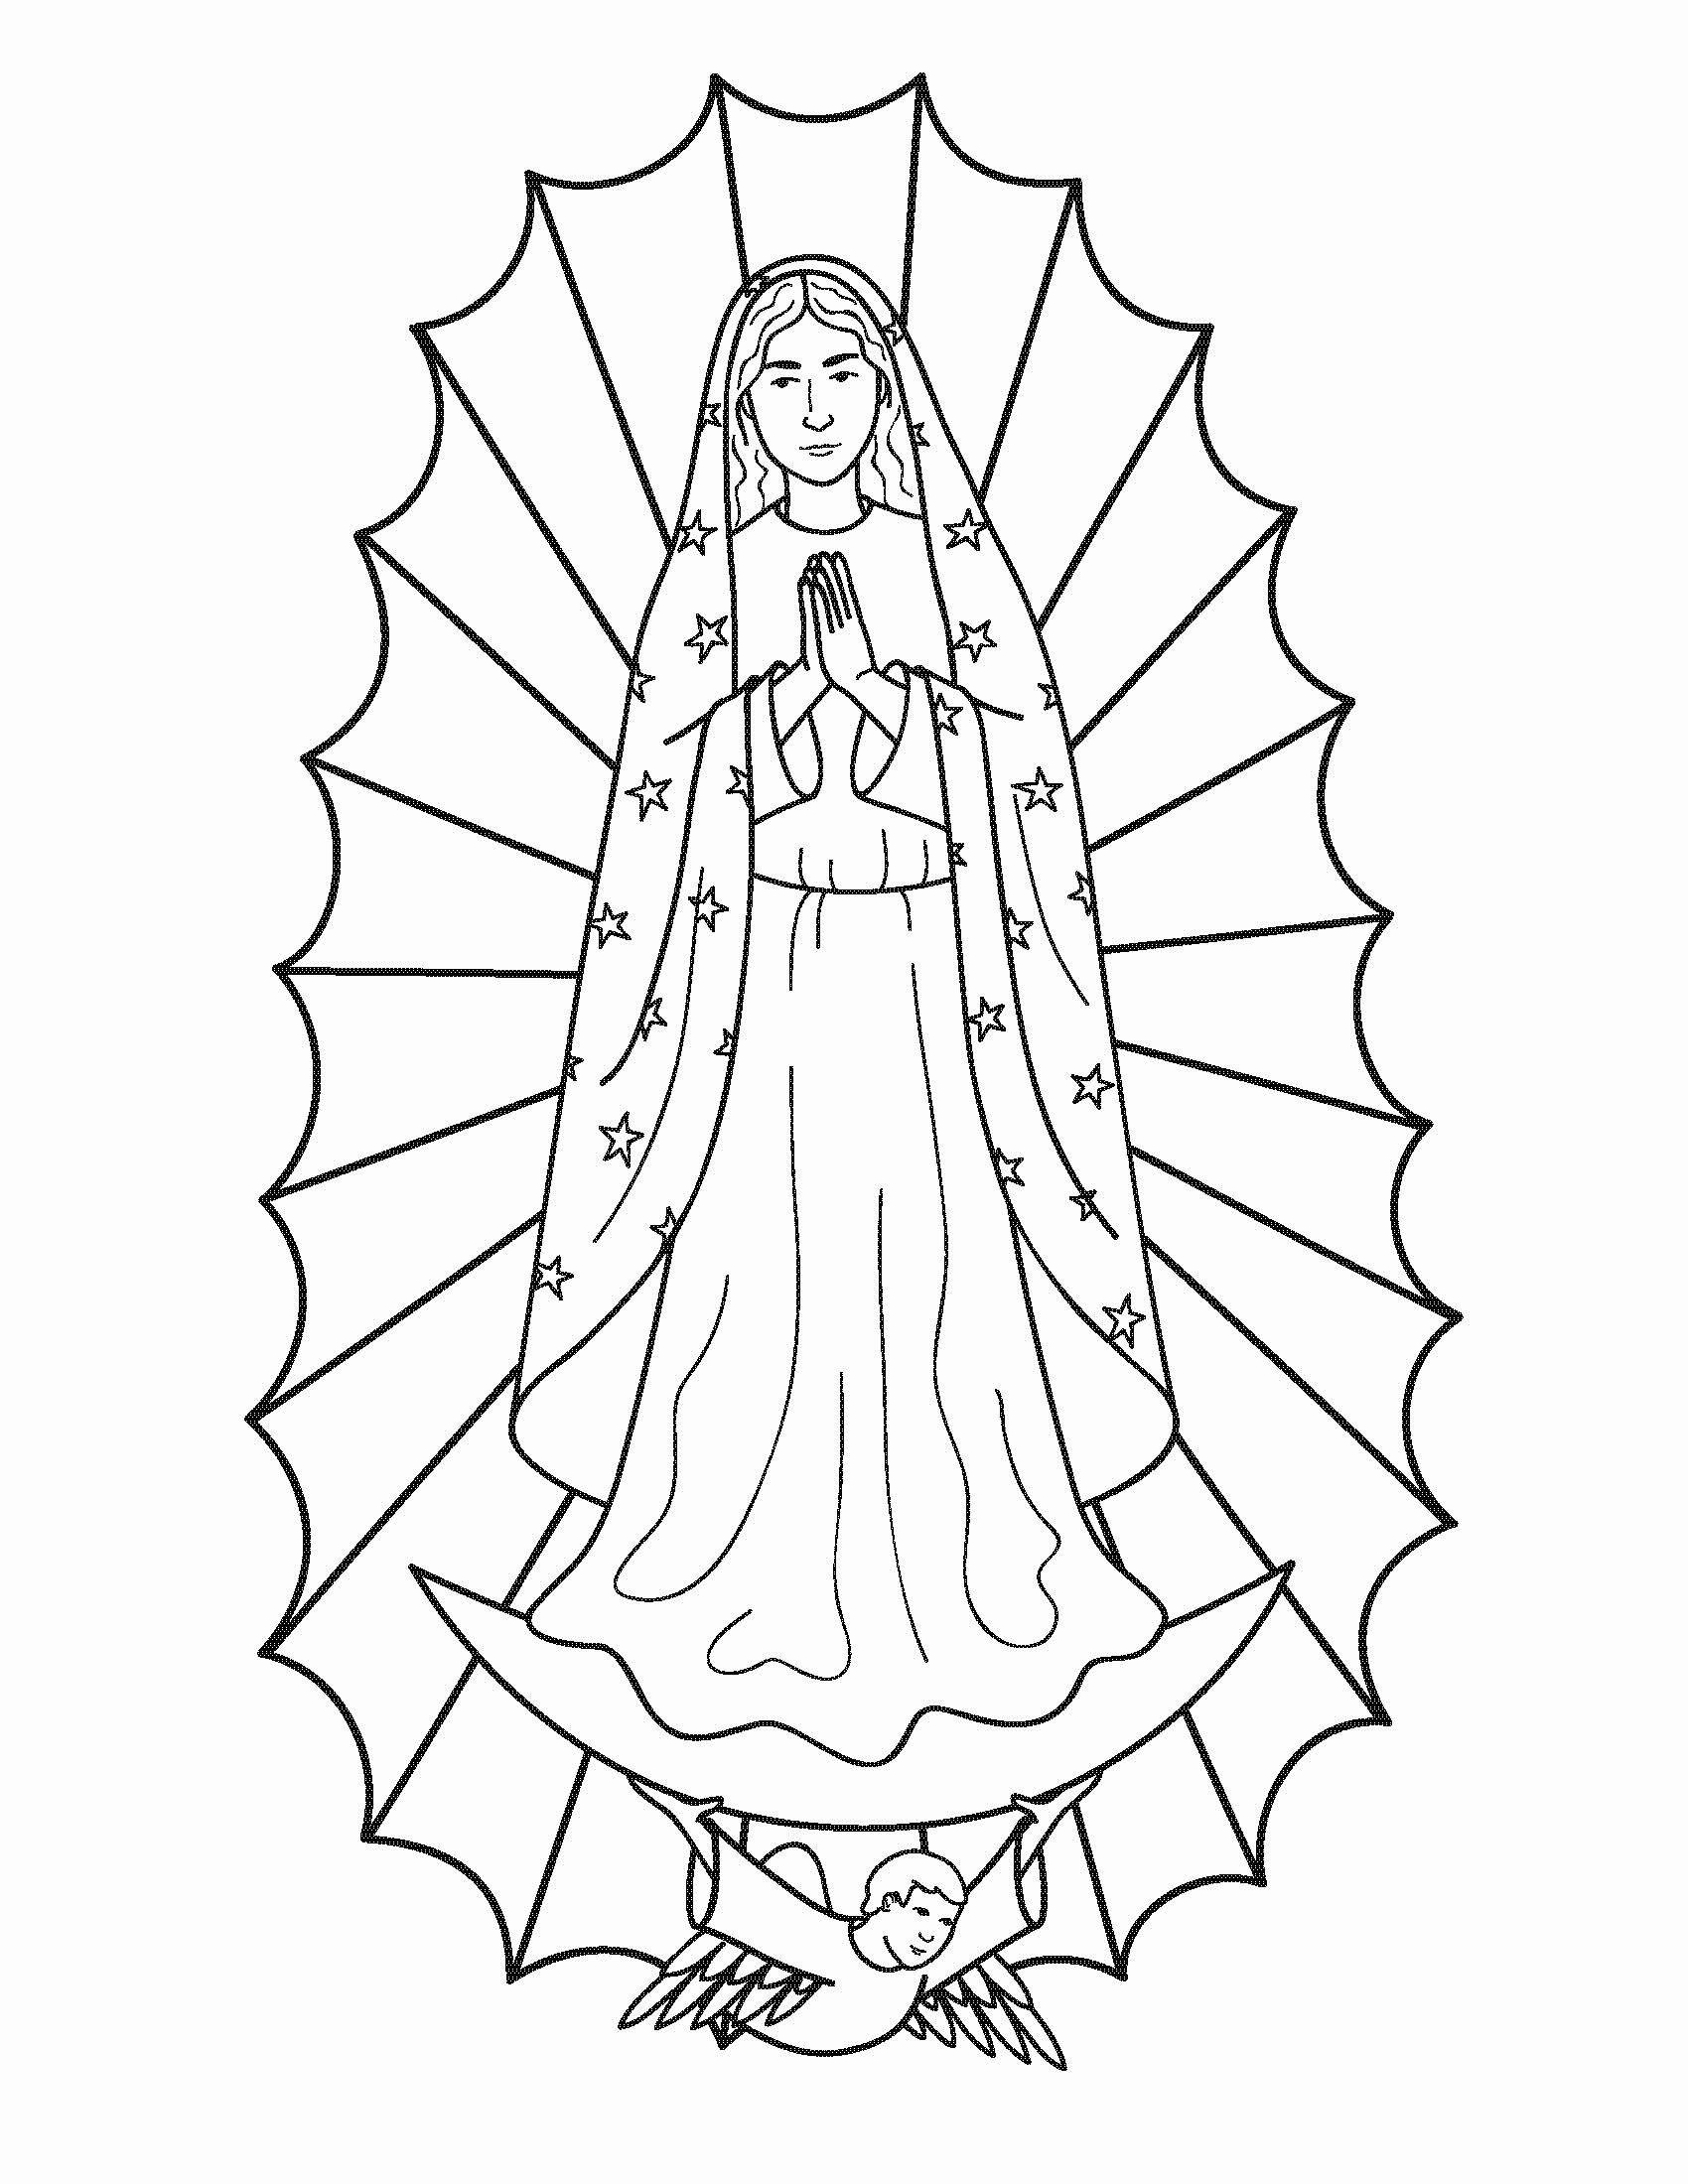 Our Lady Of Guadalupe Coloring Page New Catechetical Resources Find The Perfect Gift Coloring Pages Paw Patrol Coloring Pages Dog Coloring Page